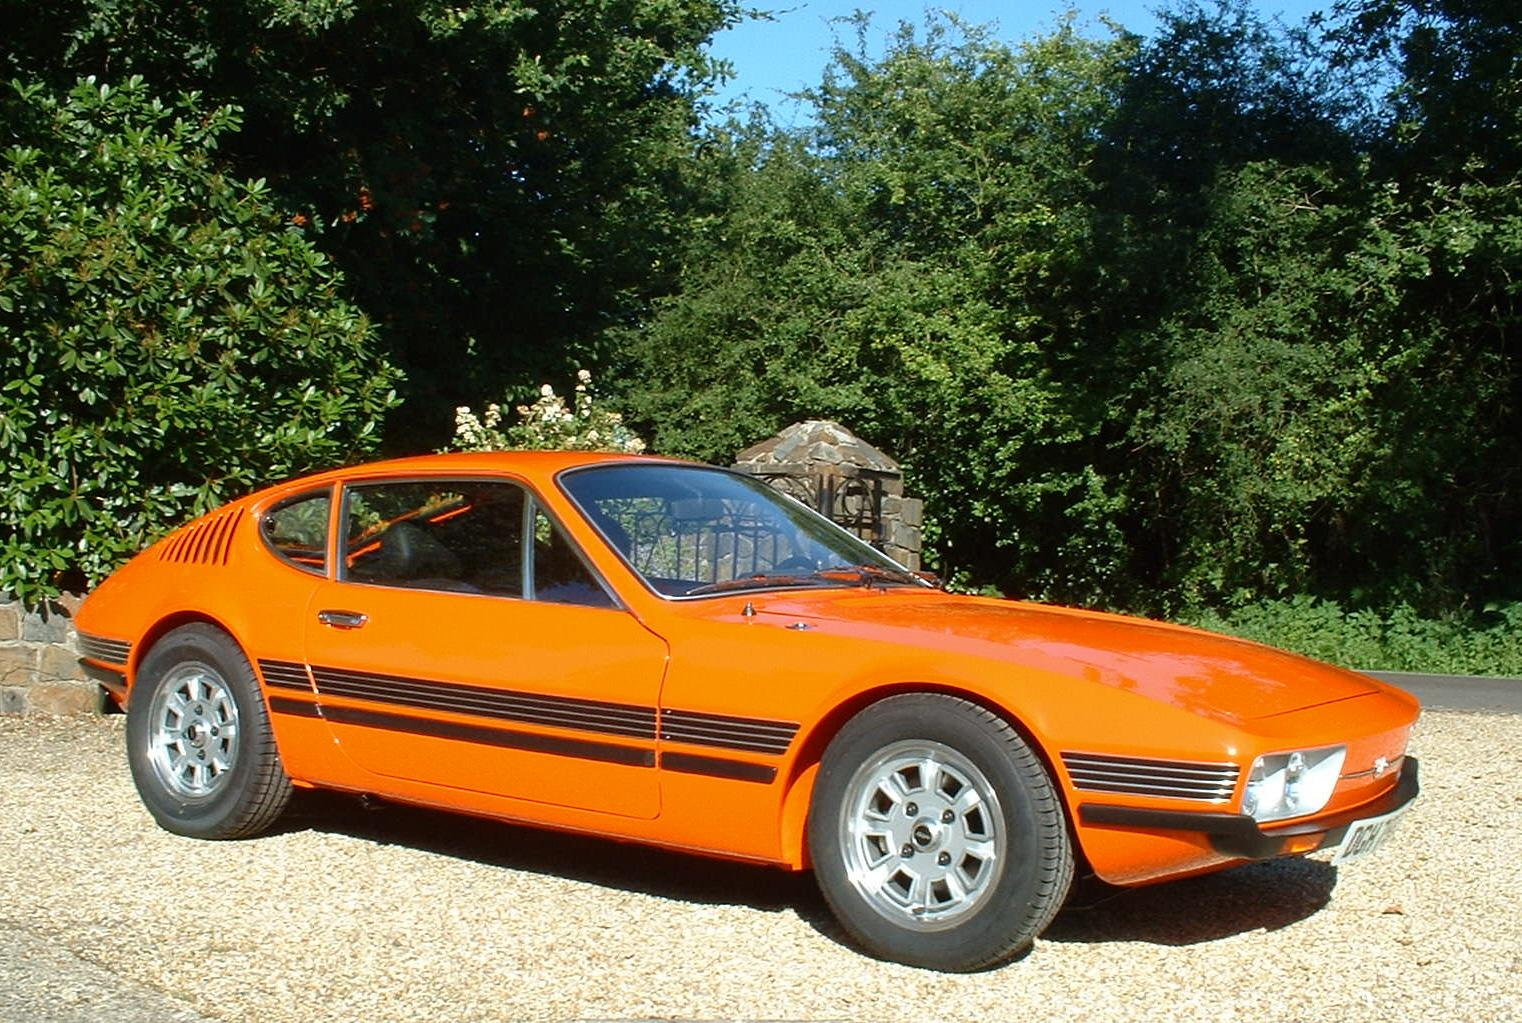 vw sp2 on ebay now page 4 vw forum vzi europe 39 s largest vw community and sales. Black Bedroom Furniture Sets. Home Design Ideas